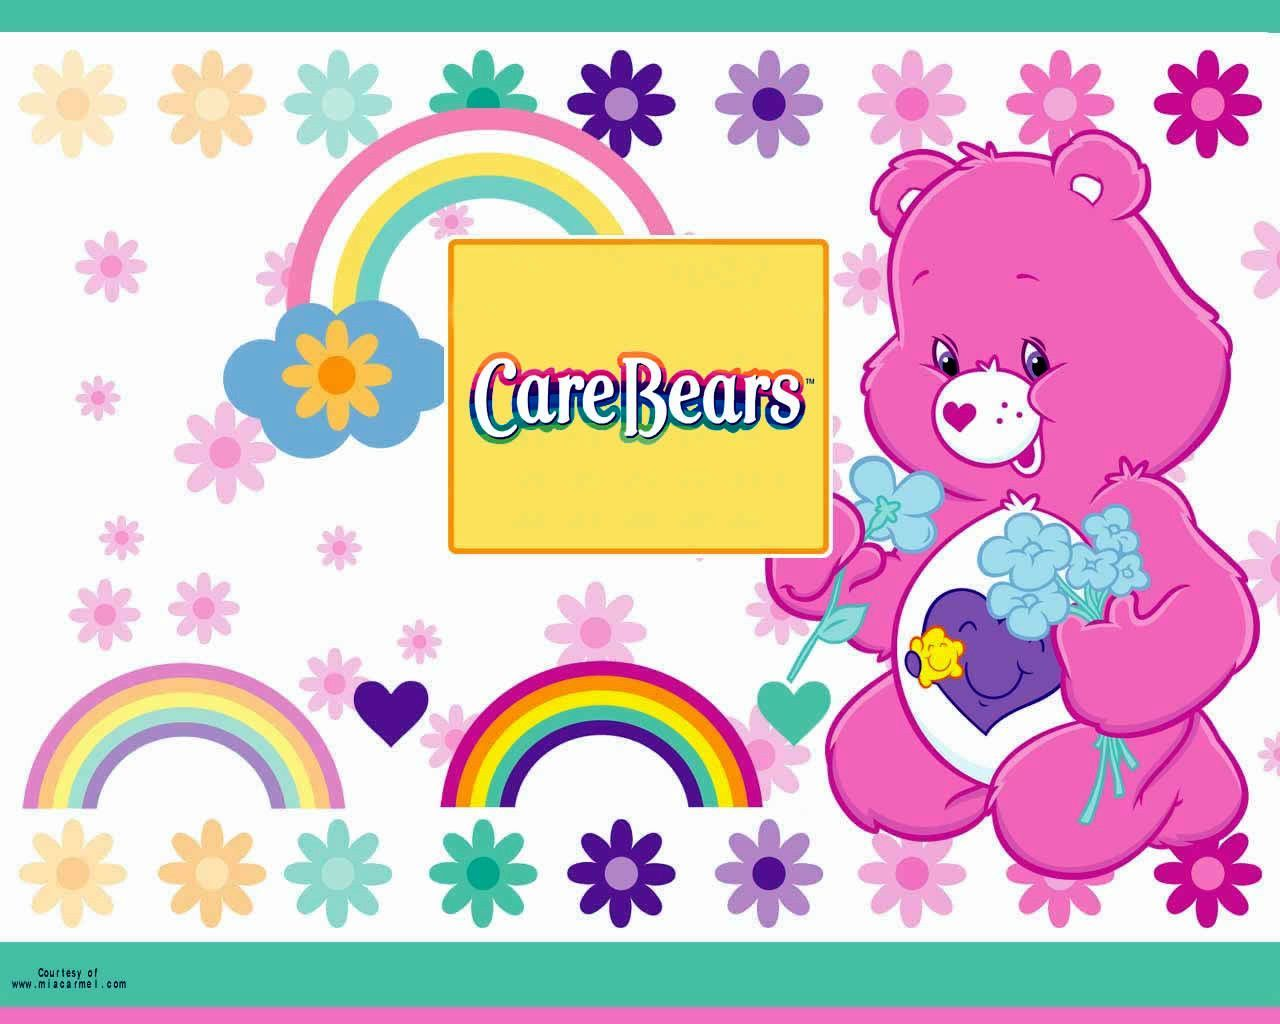 Care bear wallpaper images and wallpapers all free to art care bear wallpaper images and wallpapers all free to voltagebd Images